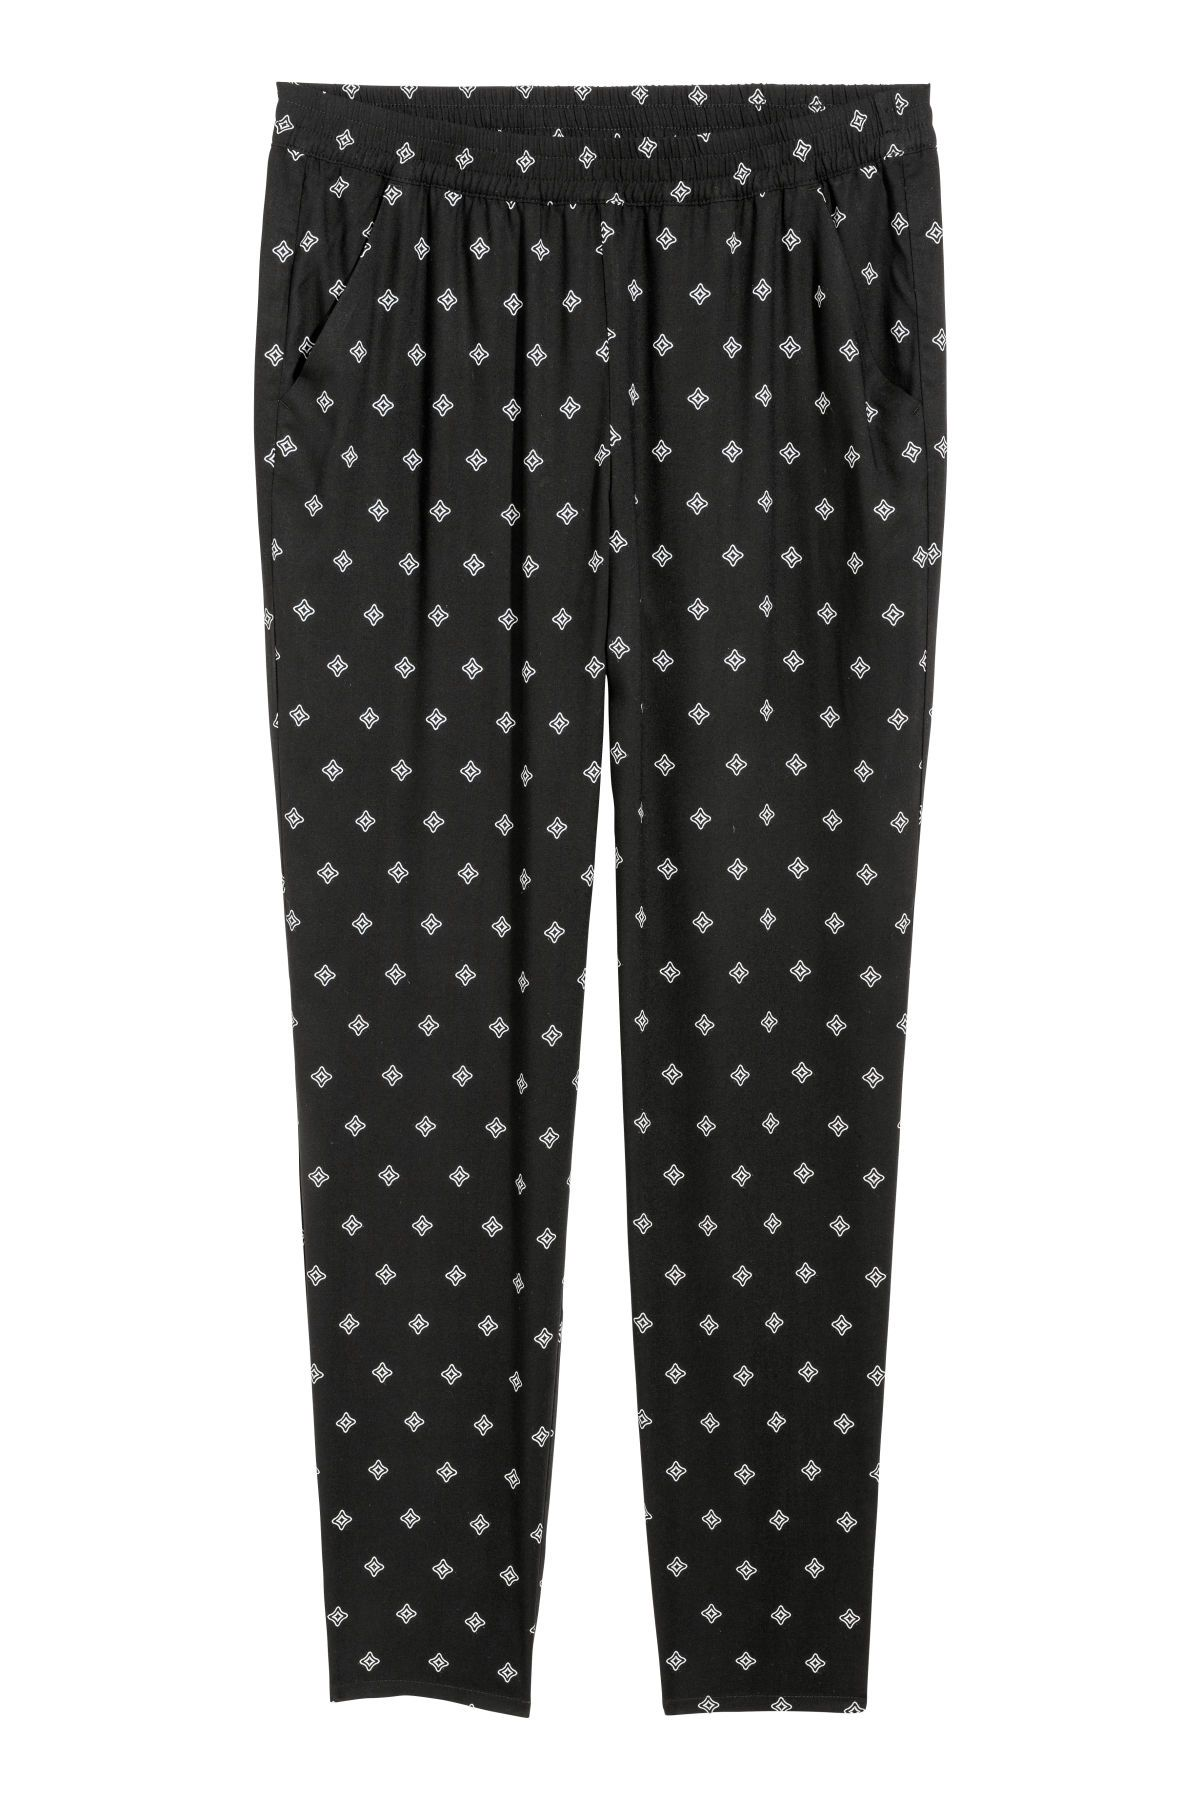 Black Patterned Pants In Woven Viscose With An Elasticized Waistband Side Pockets And Tapered Legs Regular Waist Ankle Length Pants Fashion Pull On Pants